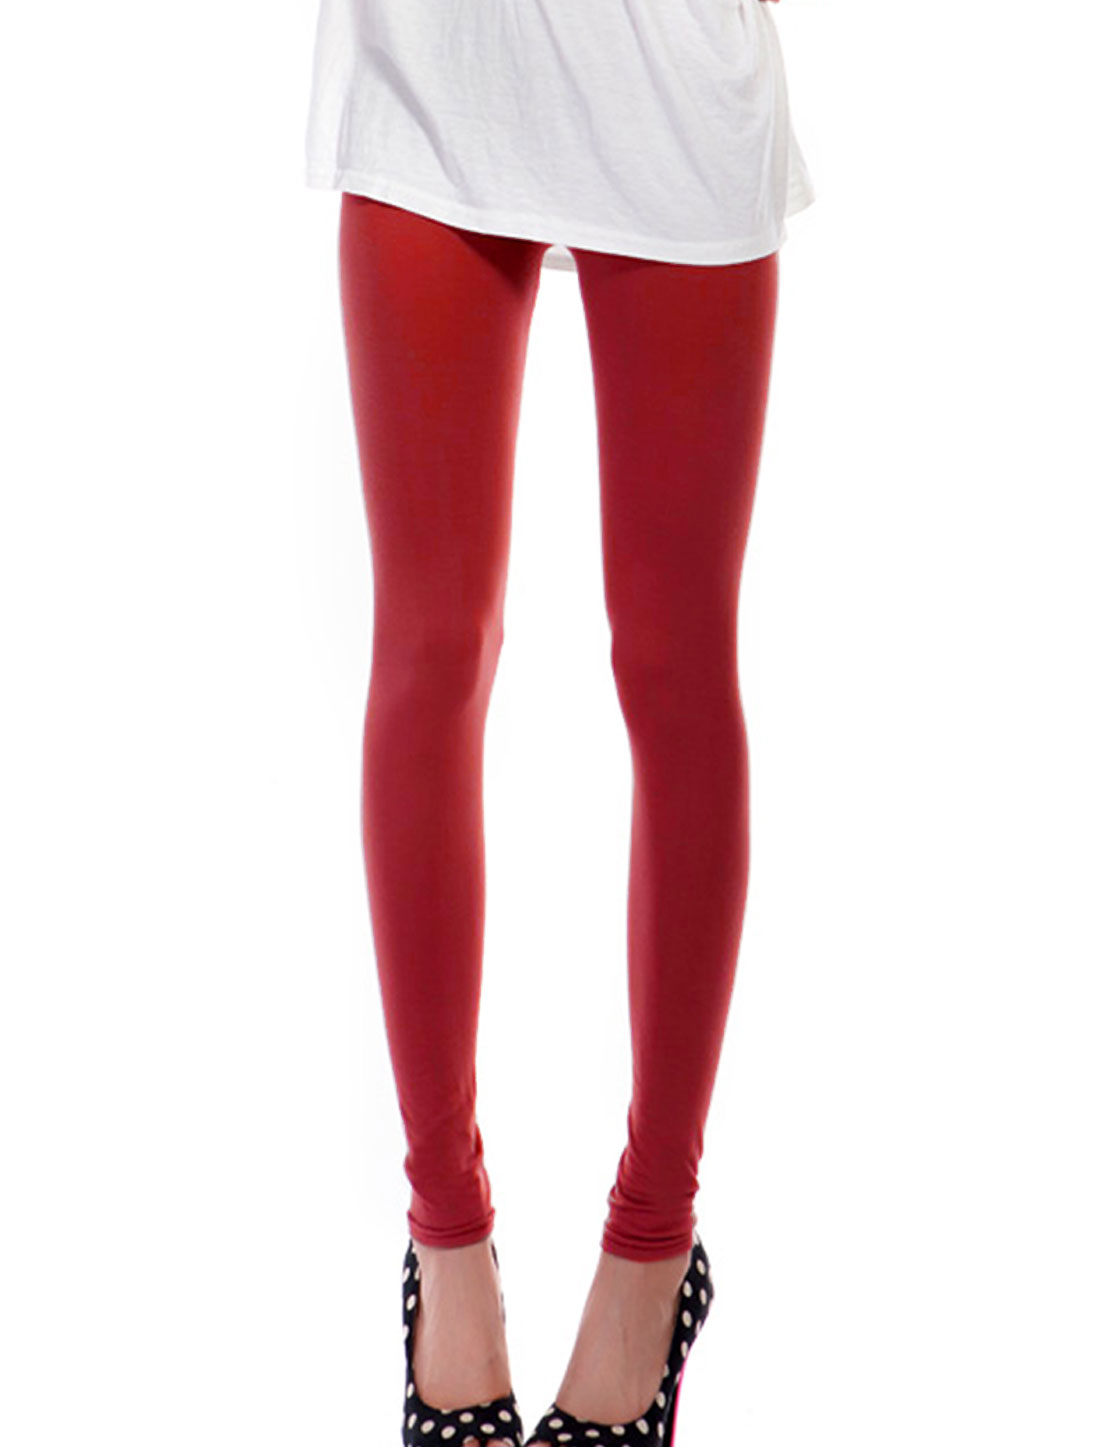 Women Mid Waist Elastic Fashionable Leggings Red Turquoise XS